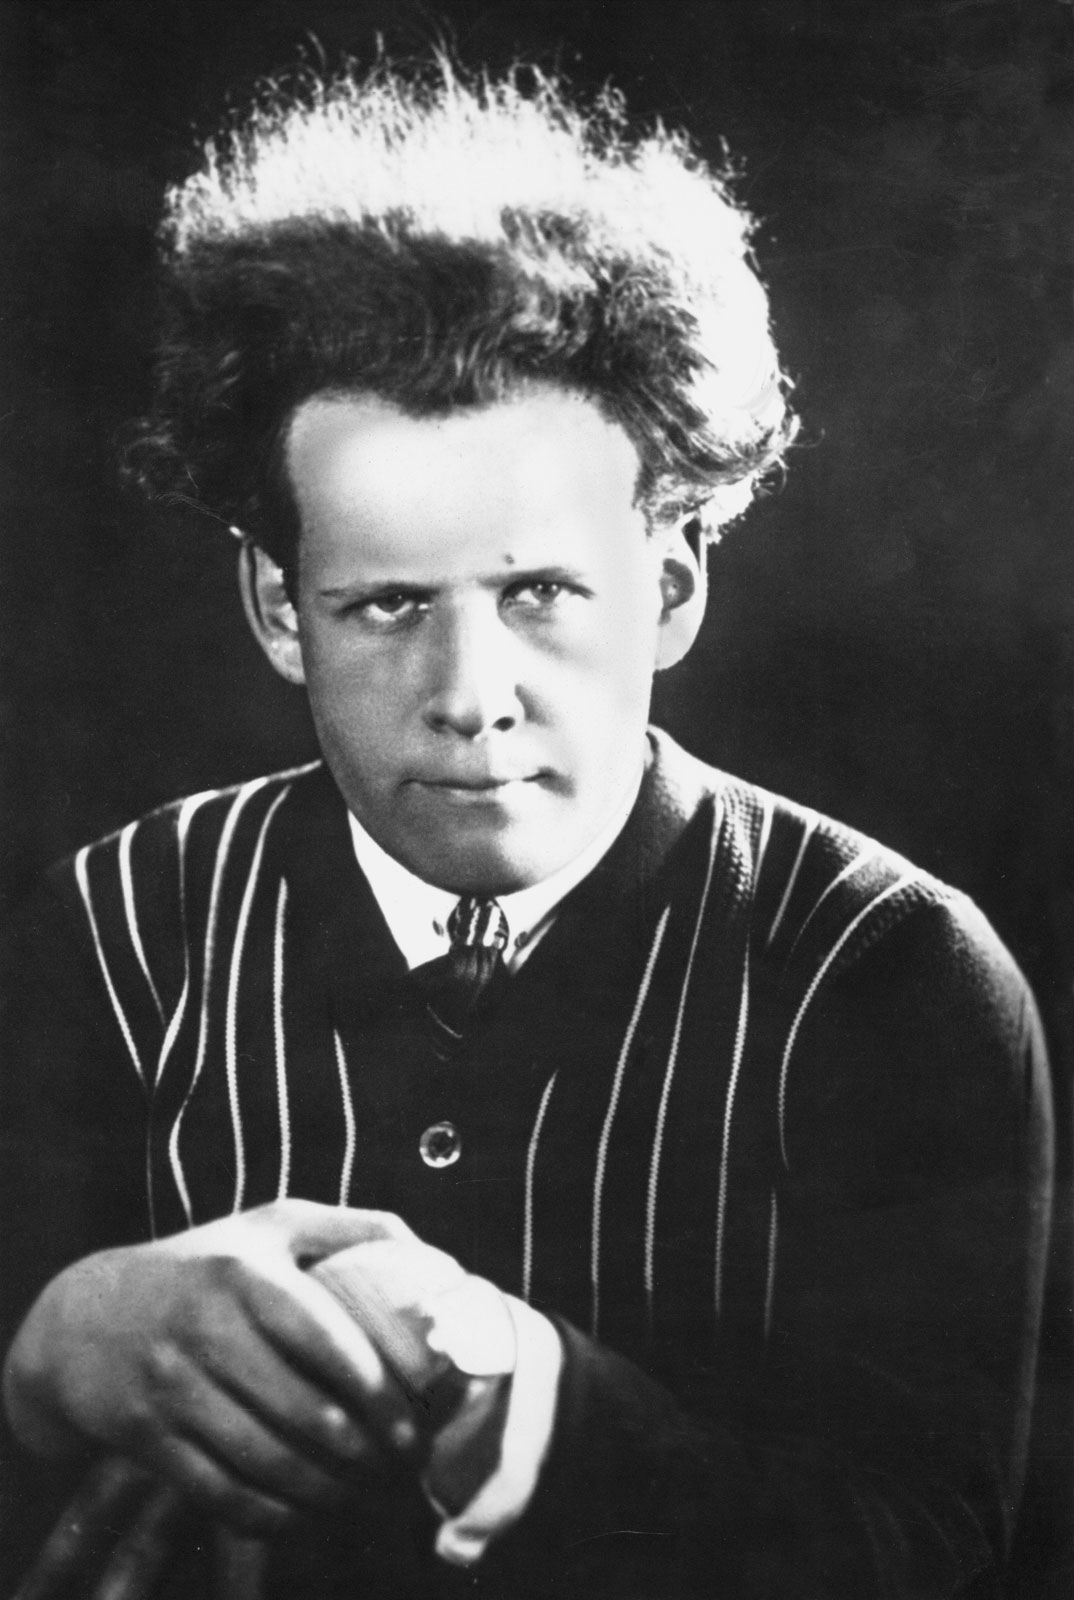 montage in films of sergei eisenstein Sergei eisenstein: the complex man portrayed in today's google doodle was so much more than the master of montage it was what he did after battleship potemkin that defined him as an artist .